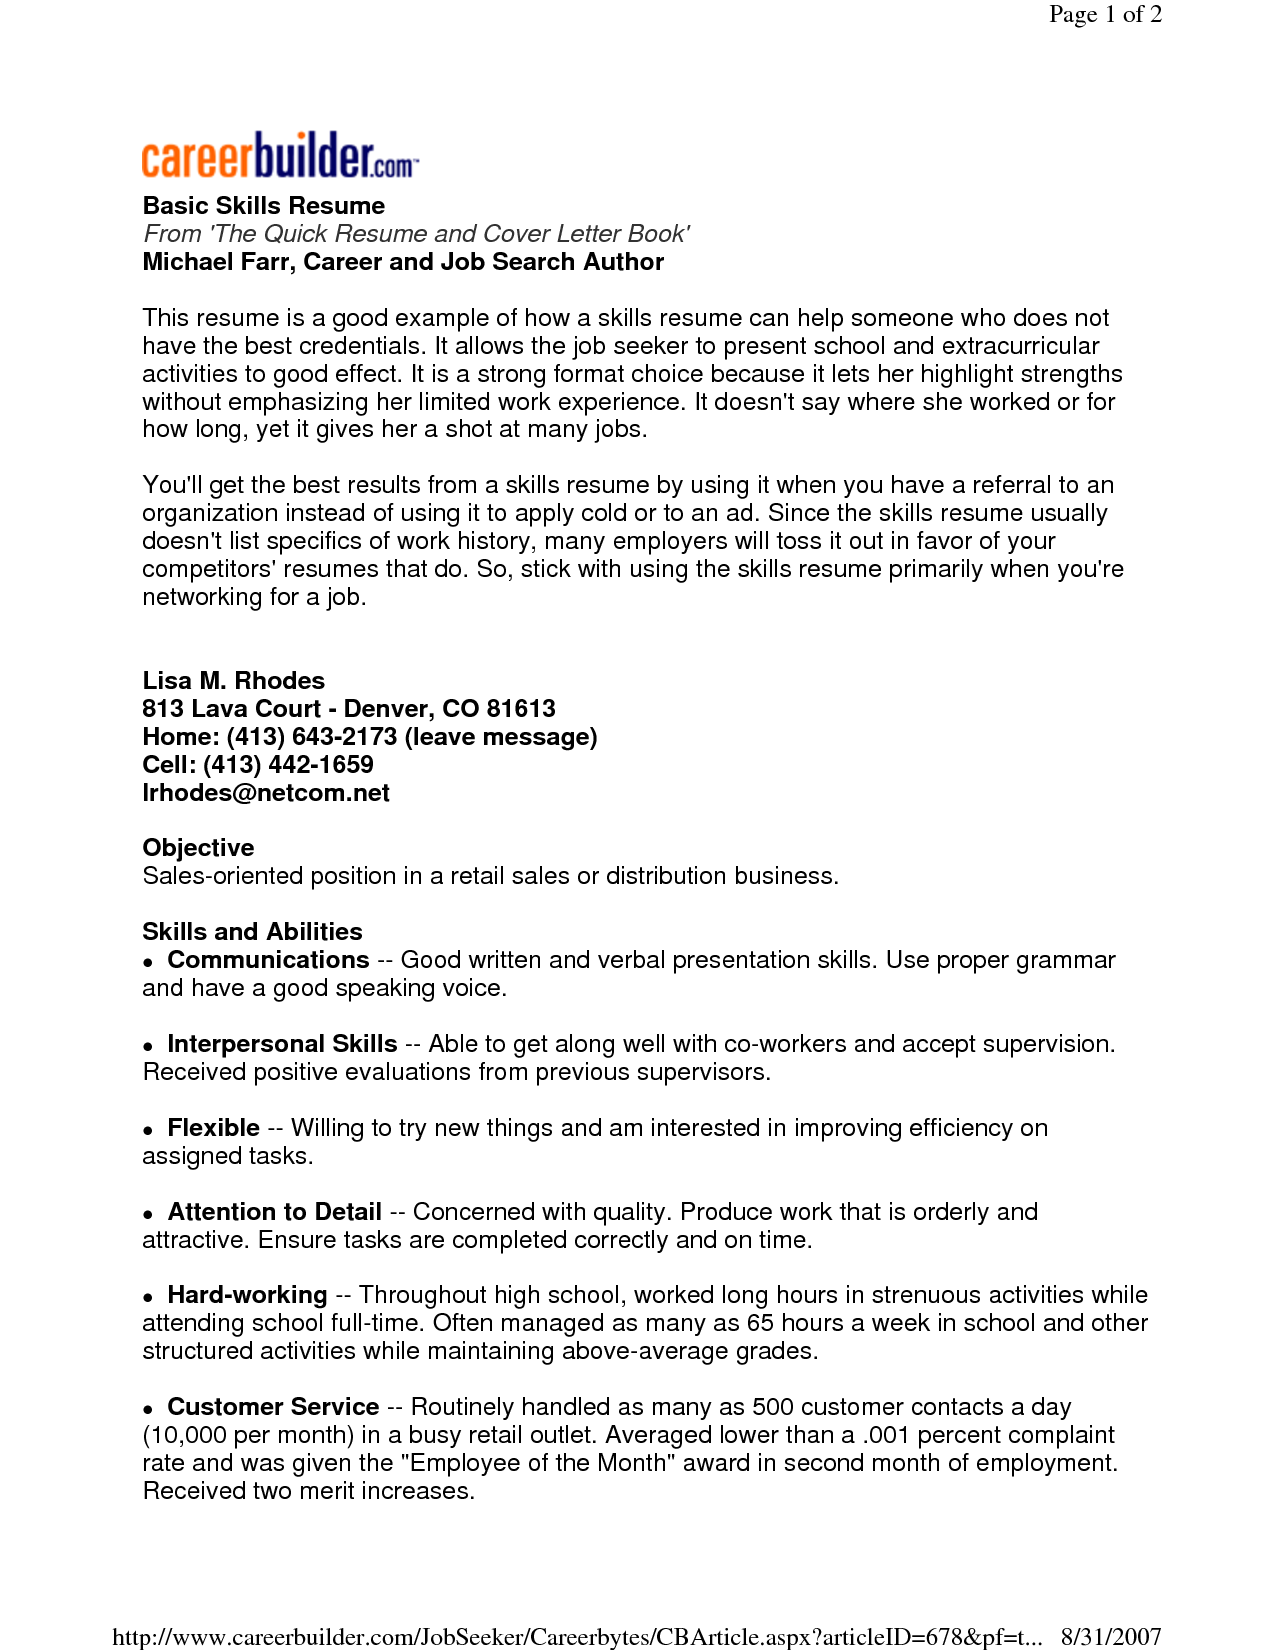 Customer Service And Sales Resume Glamorous Key Skills  Pinterest  Sample Resume Resume Examples And Resume .